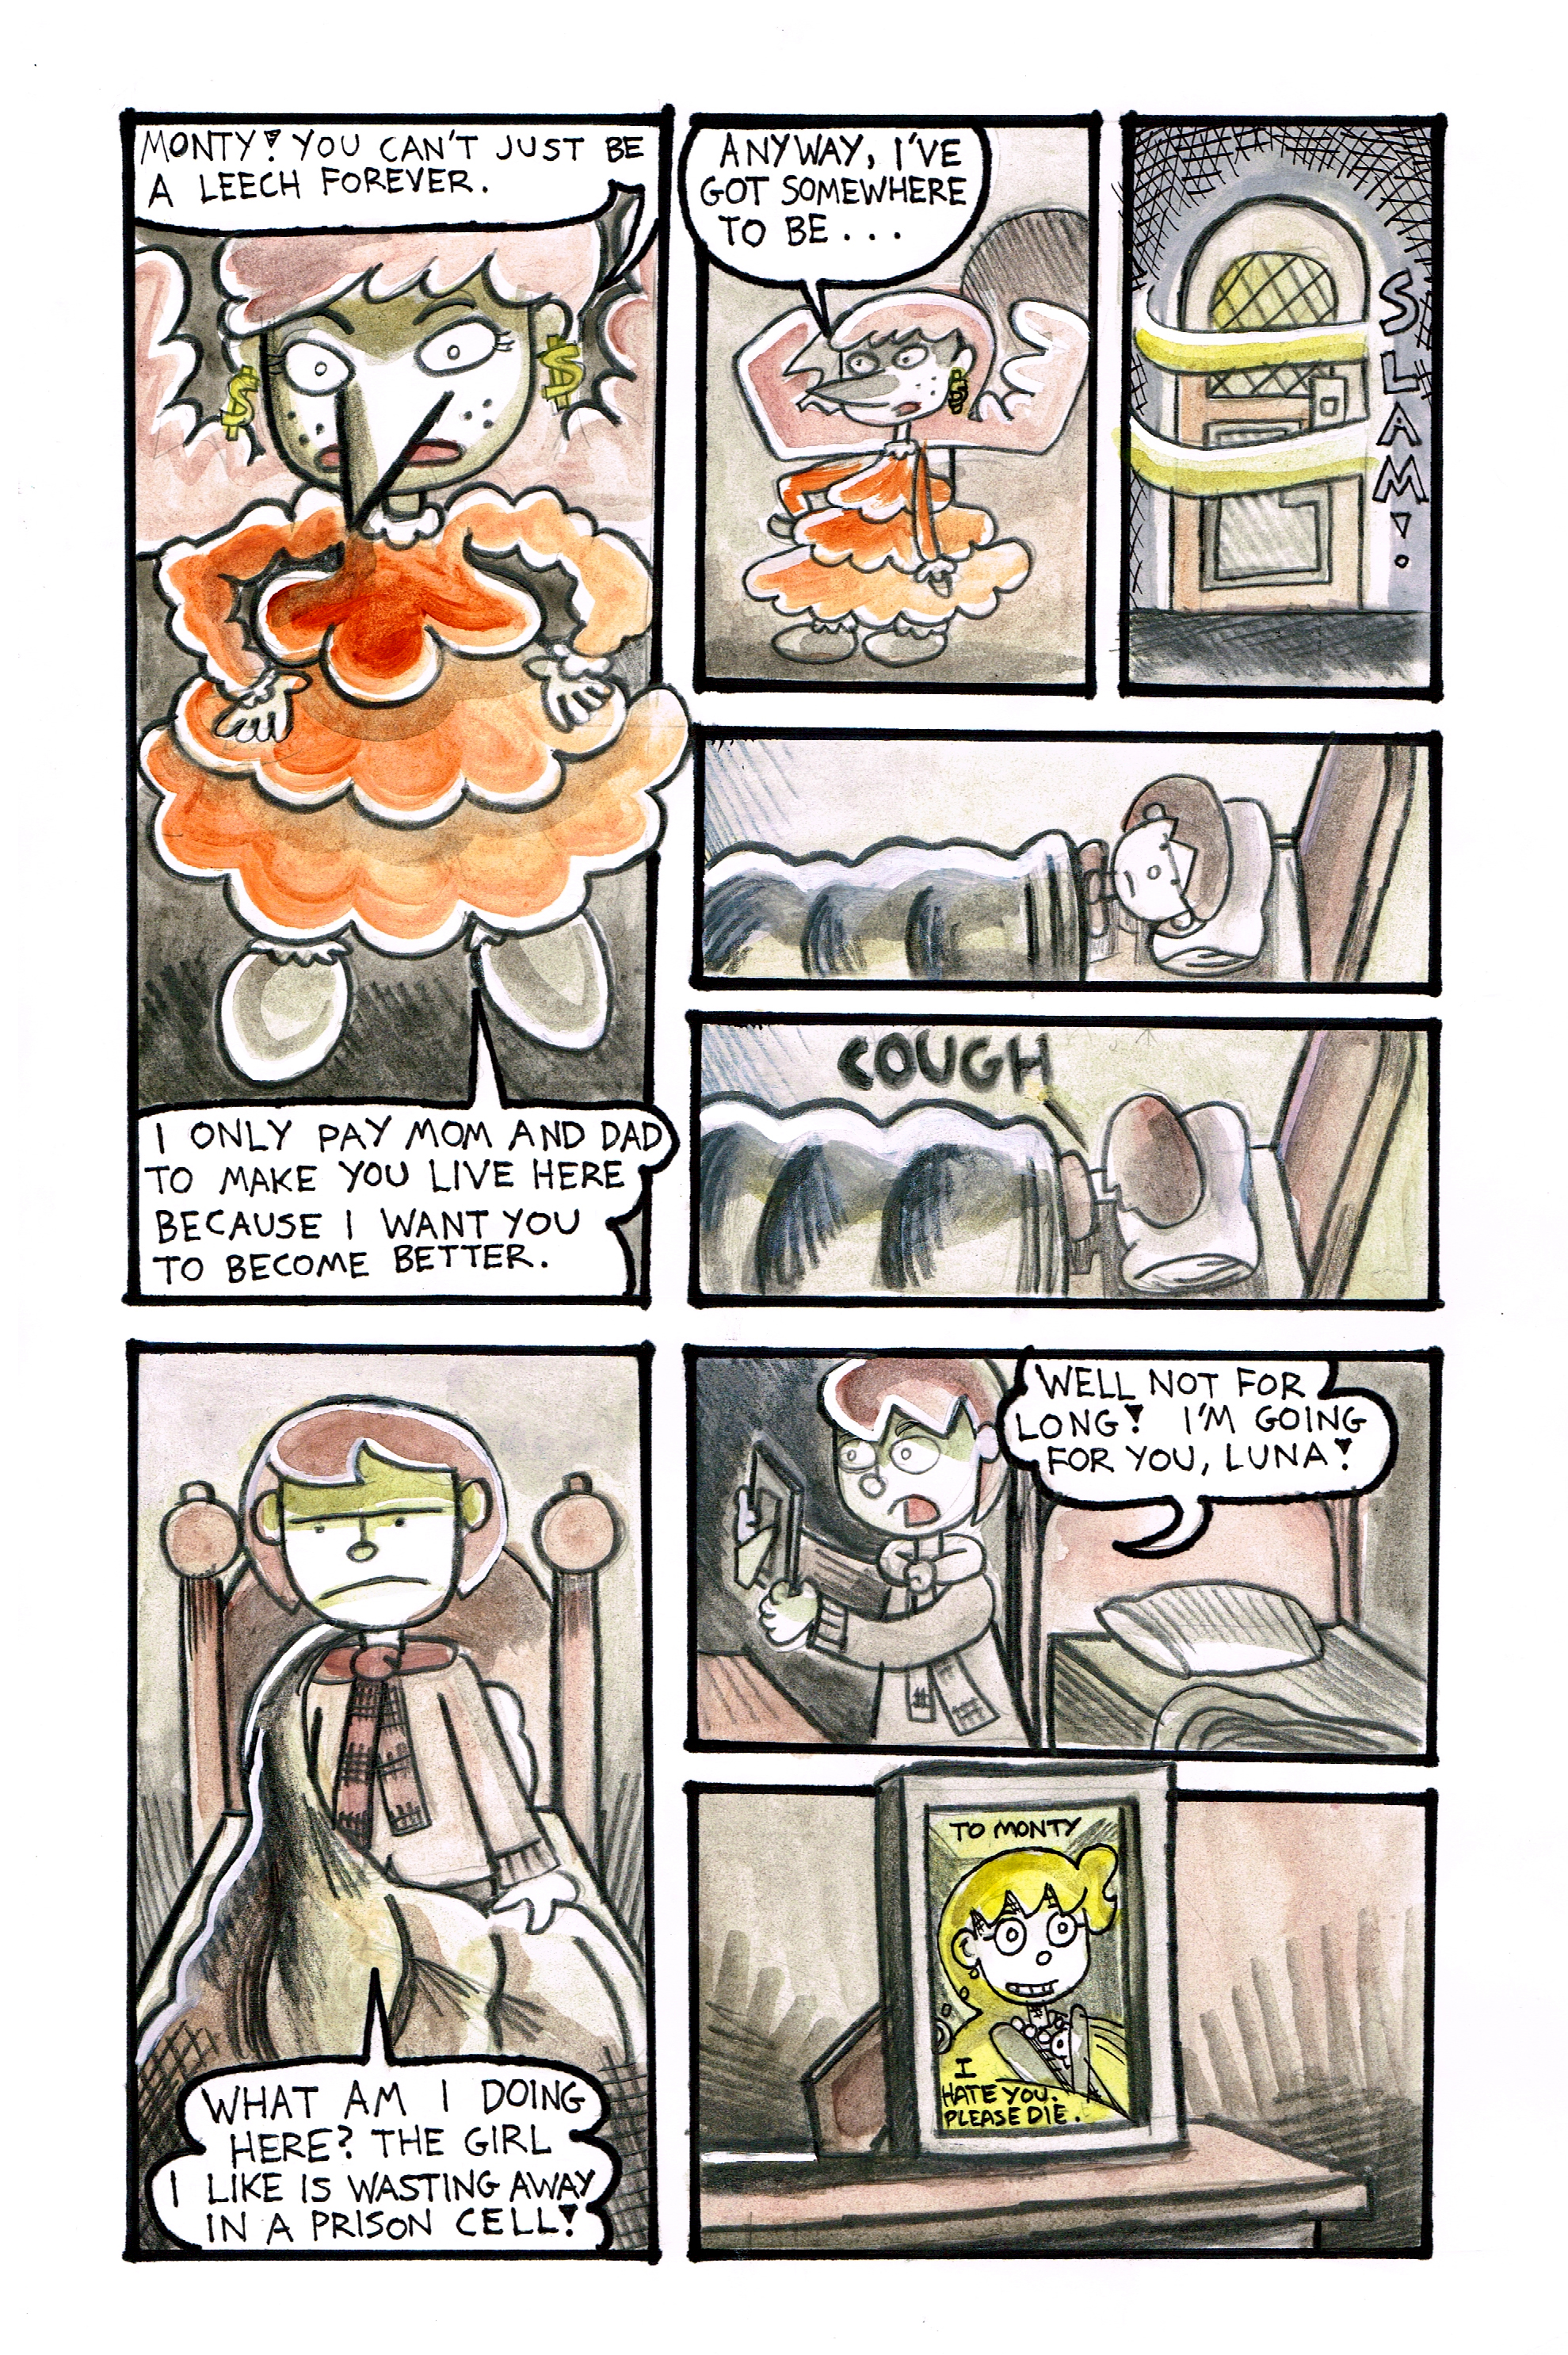 77. How I Spent My Slammer Vacation Page 4